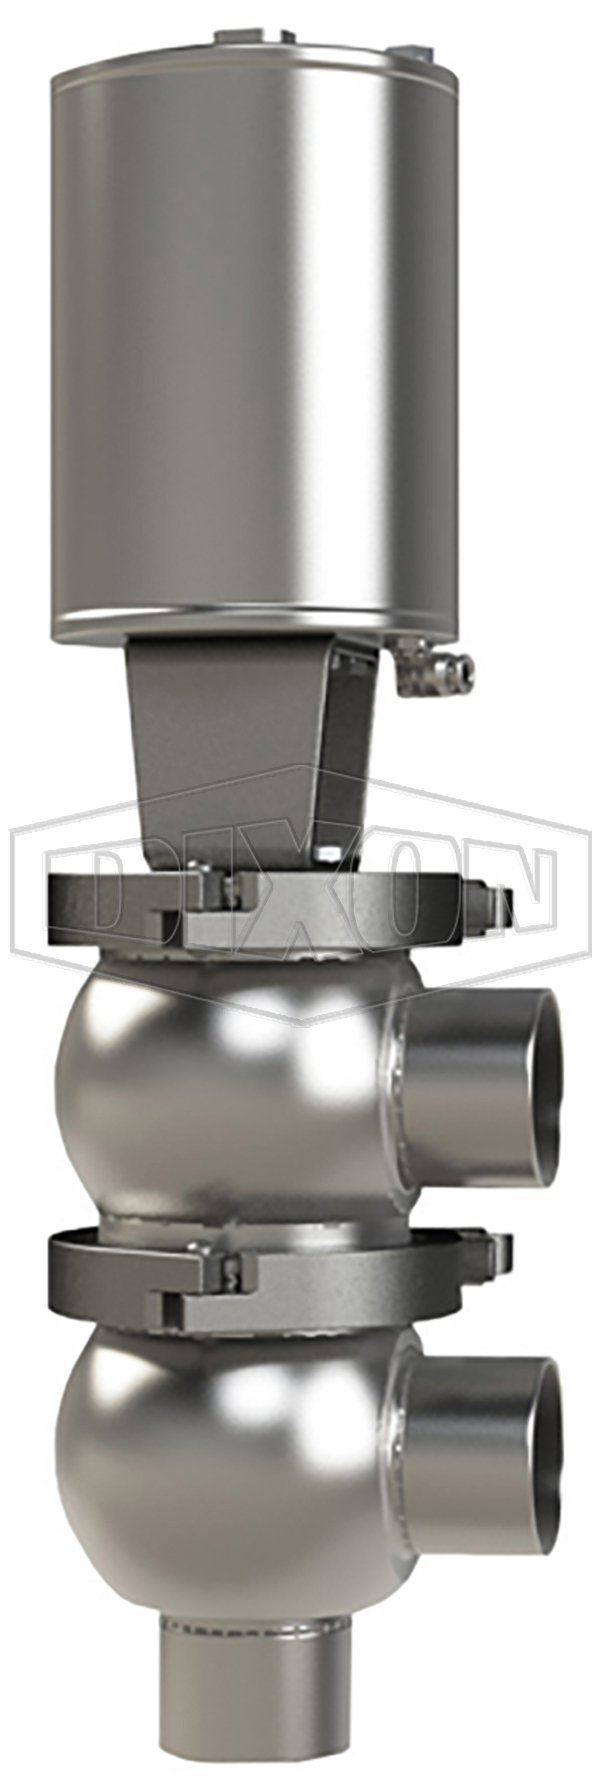 SSV Series Single Seat Valve, Divert F Body, Weld, Double Acting Actuator (Air-To-Air)